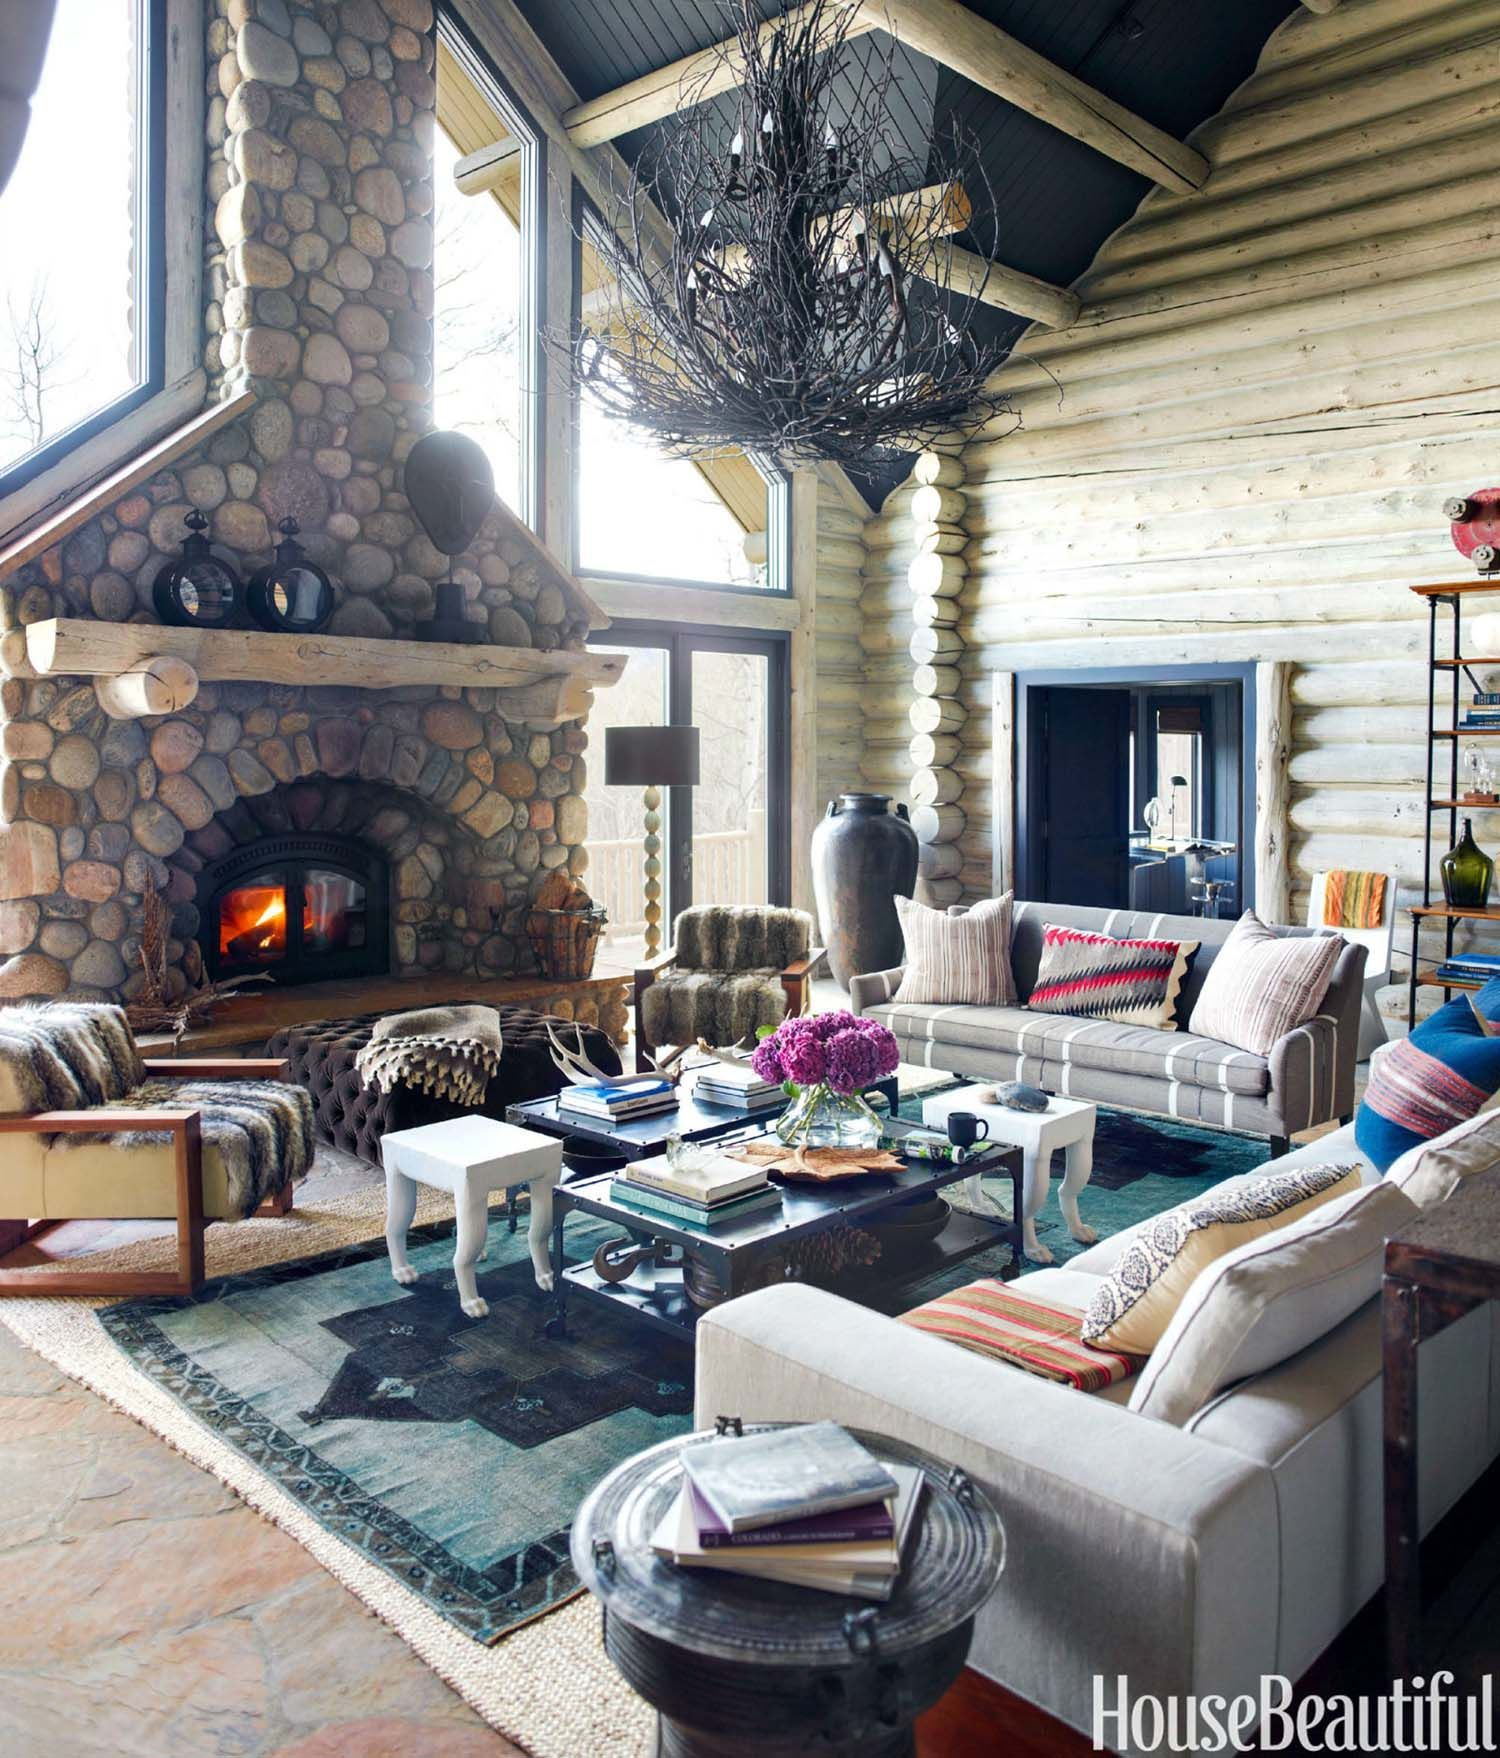 33 Ultra Cozy Bedroom Decorating Ideas For Winter Warmth: Ultra-cozy Rustic Log Cabin Nestled In The Rocky Mountains